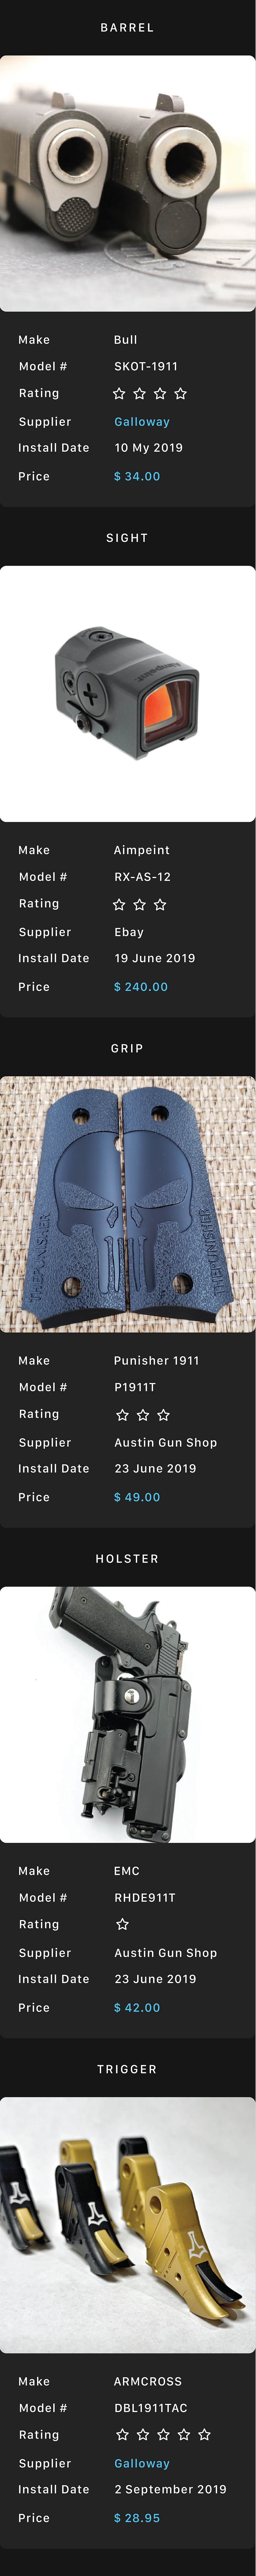 T1911 upgrades-01-01.png